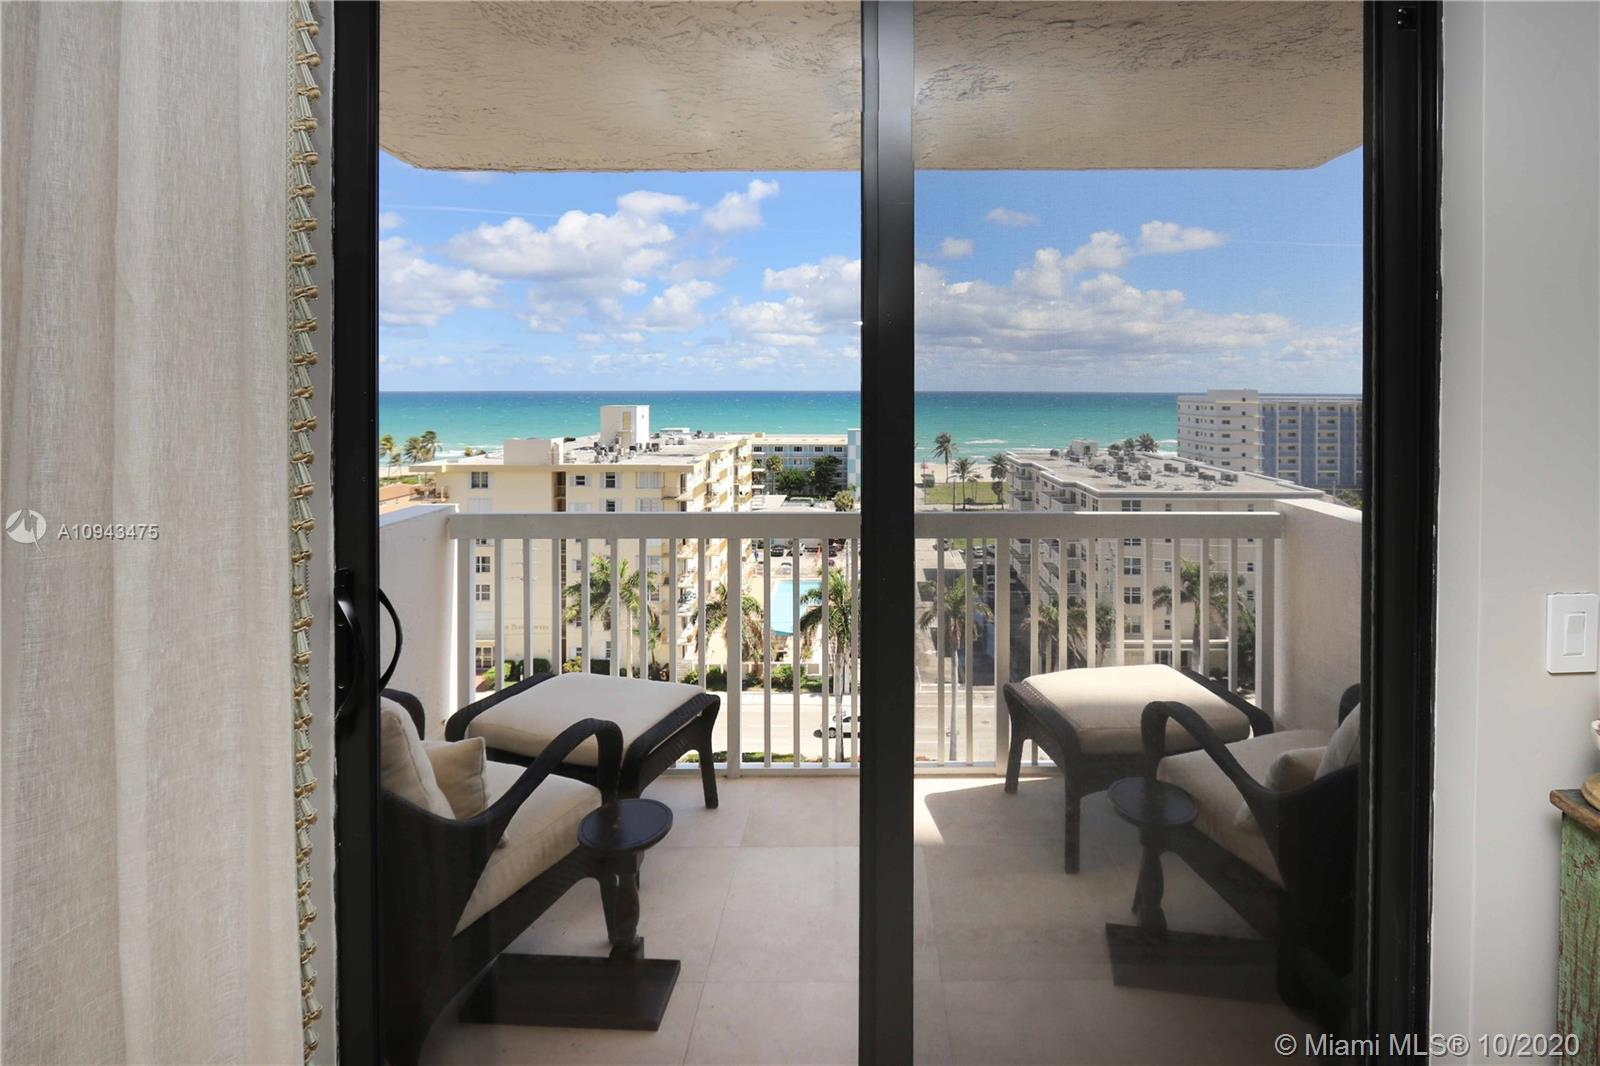 THIS IS ONE OF A KIND. Spectacular Luxurious DESIGNER UNIT with Great Ocean View, Highly upgraded/re